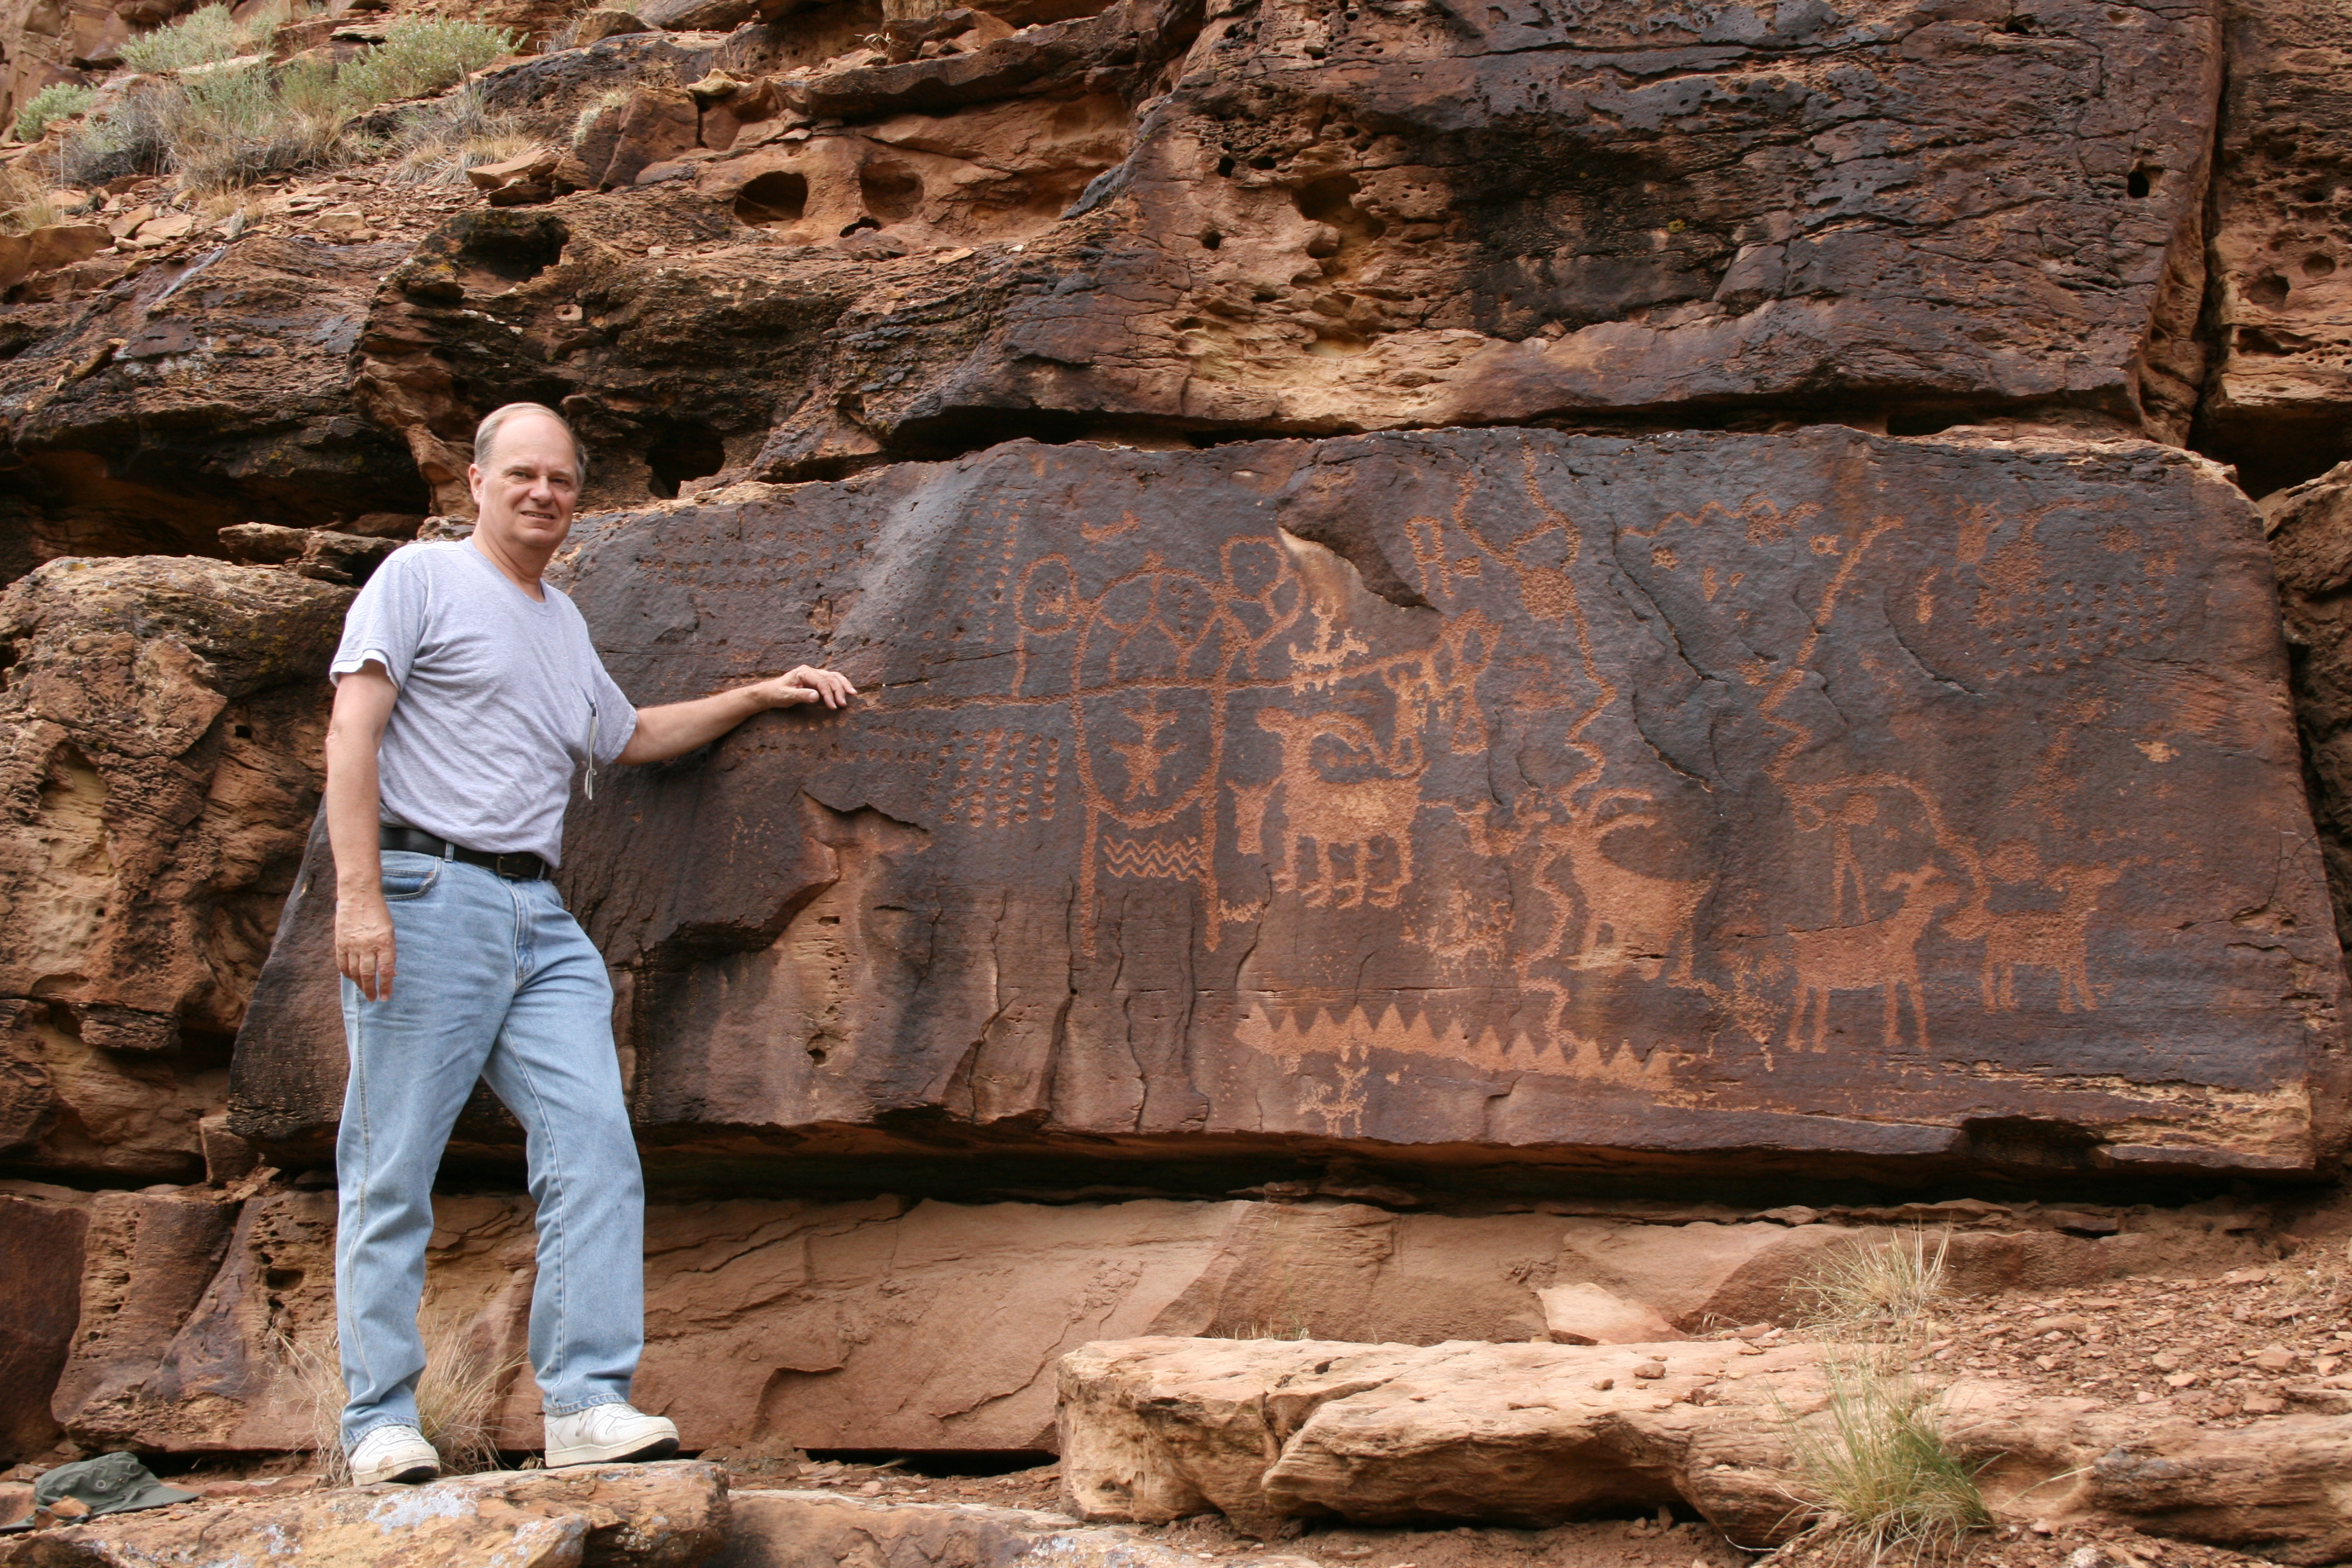 John A. Ruskamp stands near petroglyphs that match ancient Chinese script in Nine Mile Canyon, Utah. (Courtesy of John A. Ruskamp)